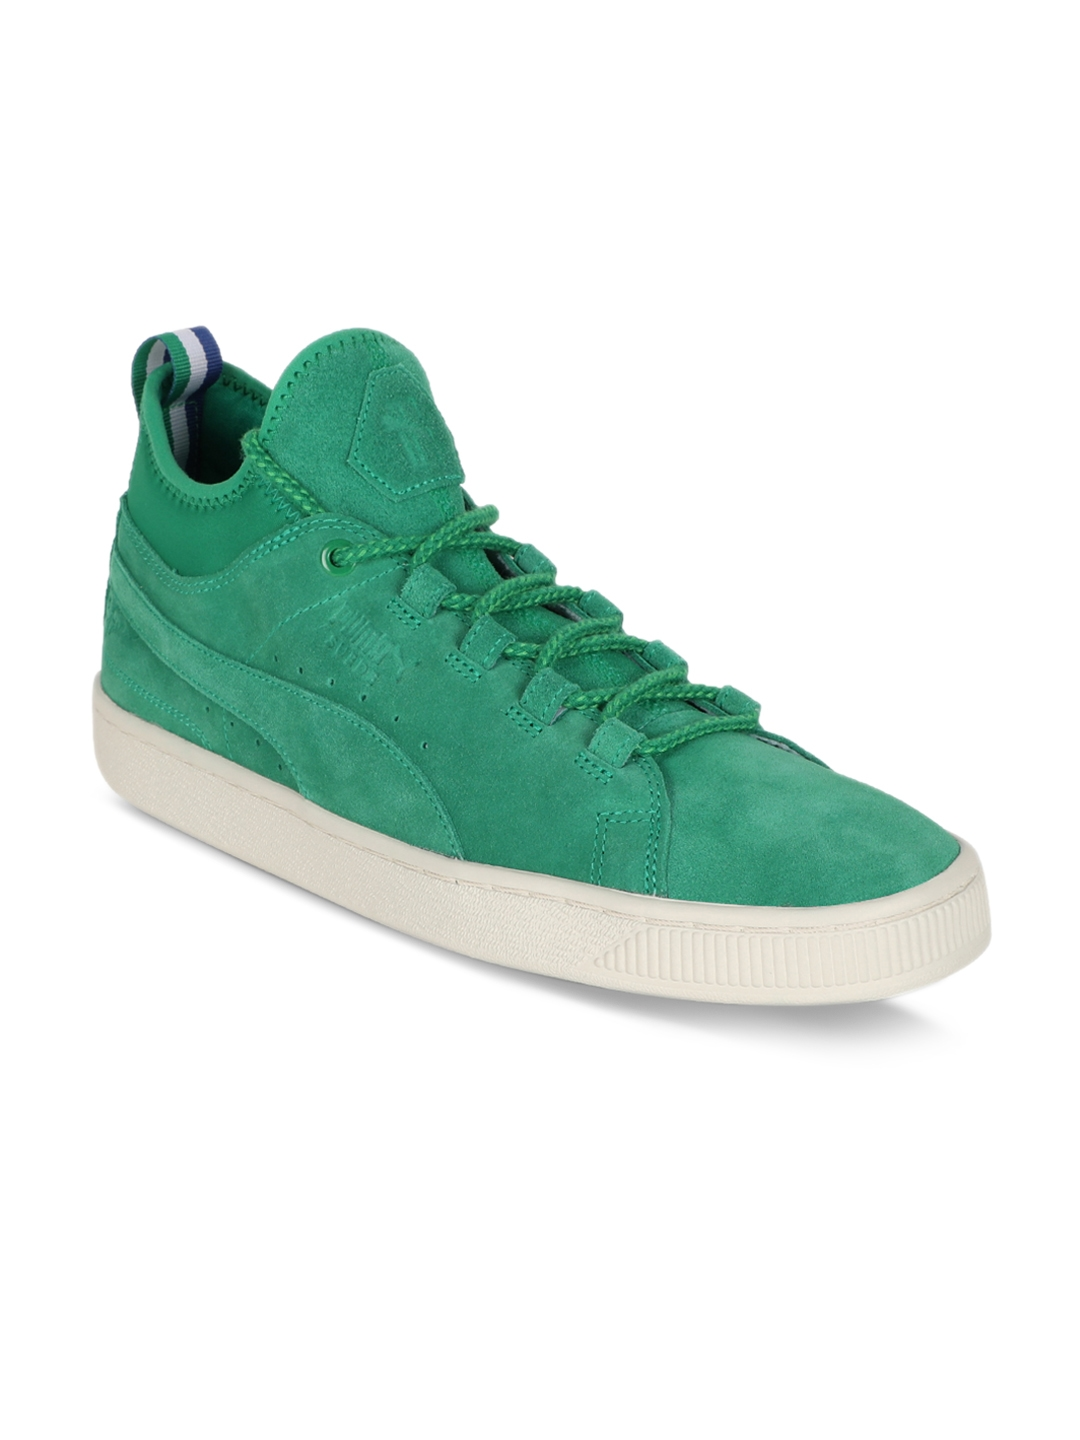 8df2a78445 Puma Unisex Suede Mid BIG SEAN Green Solid Suede Mid-Top Sneakers